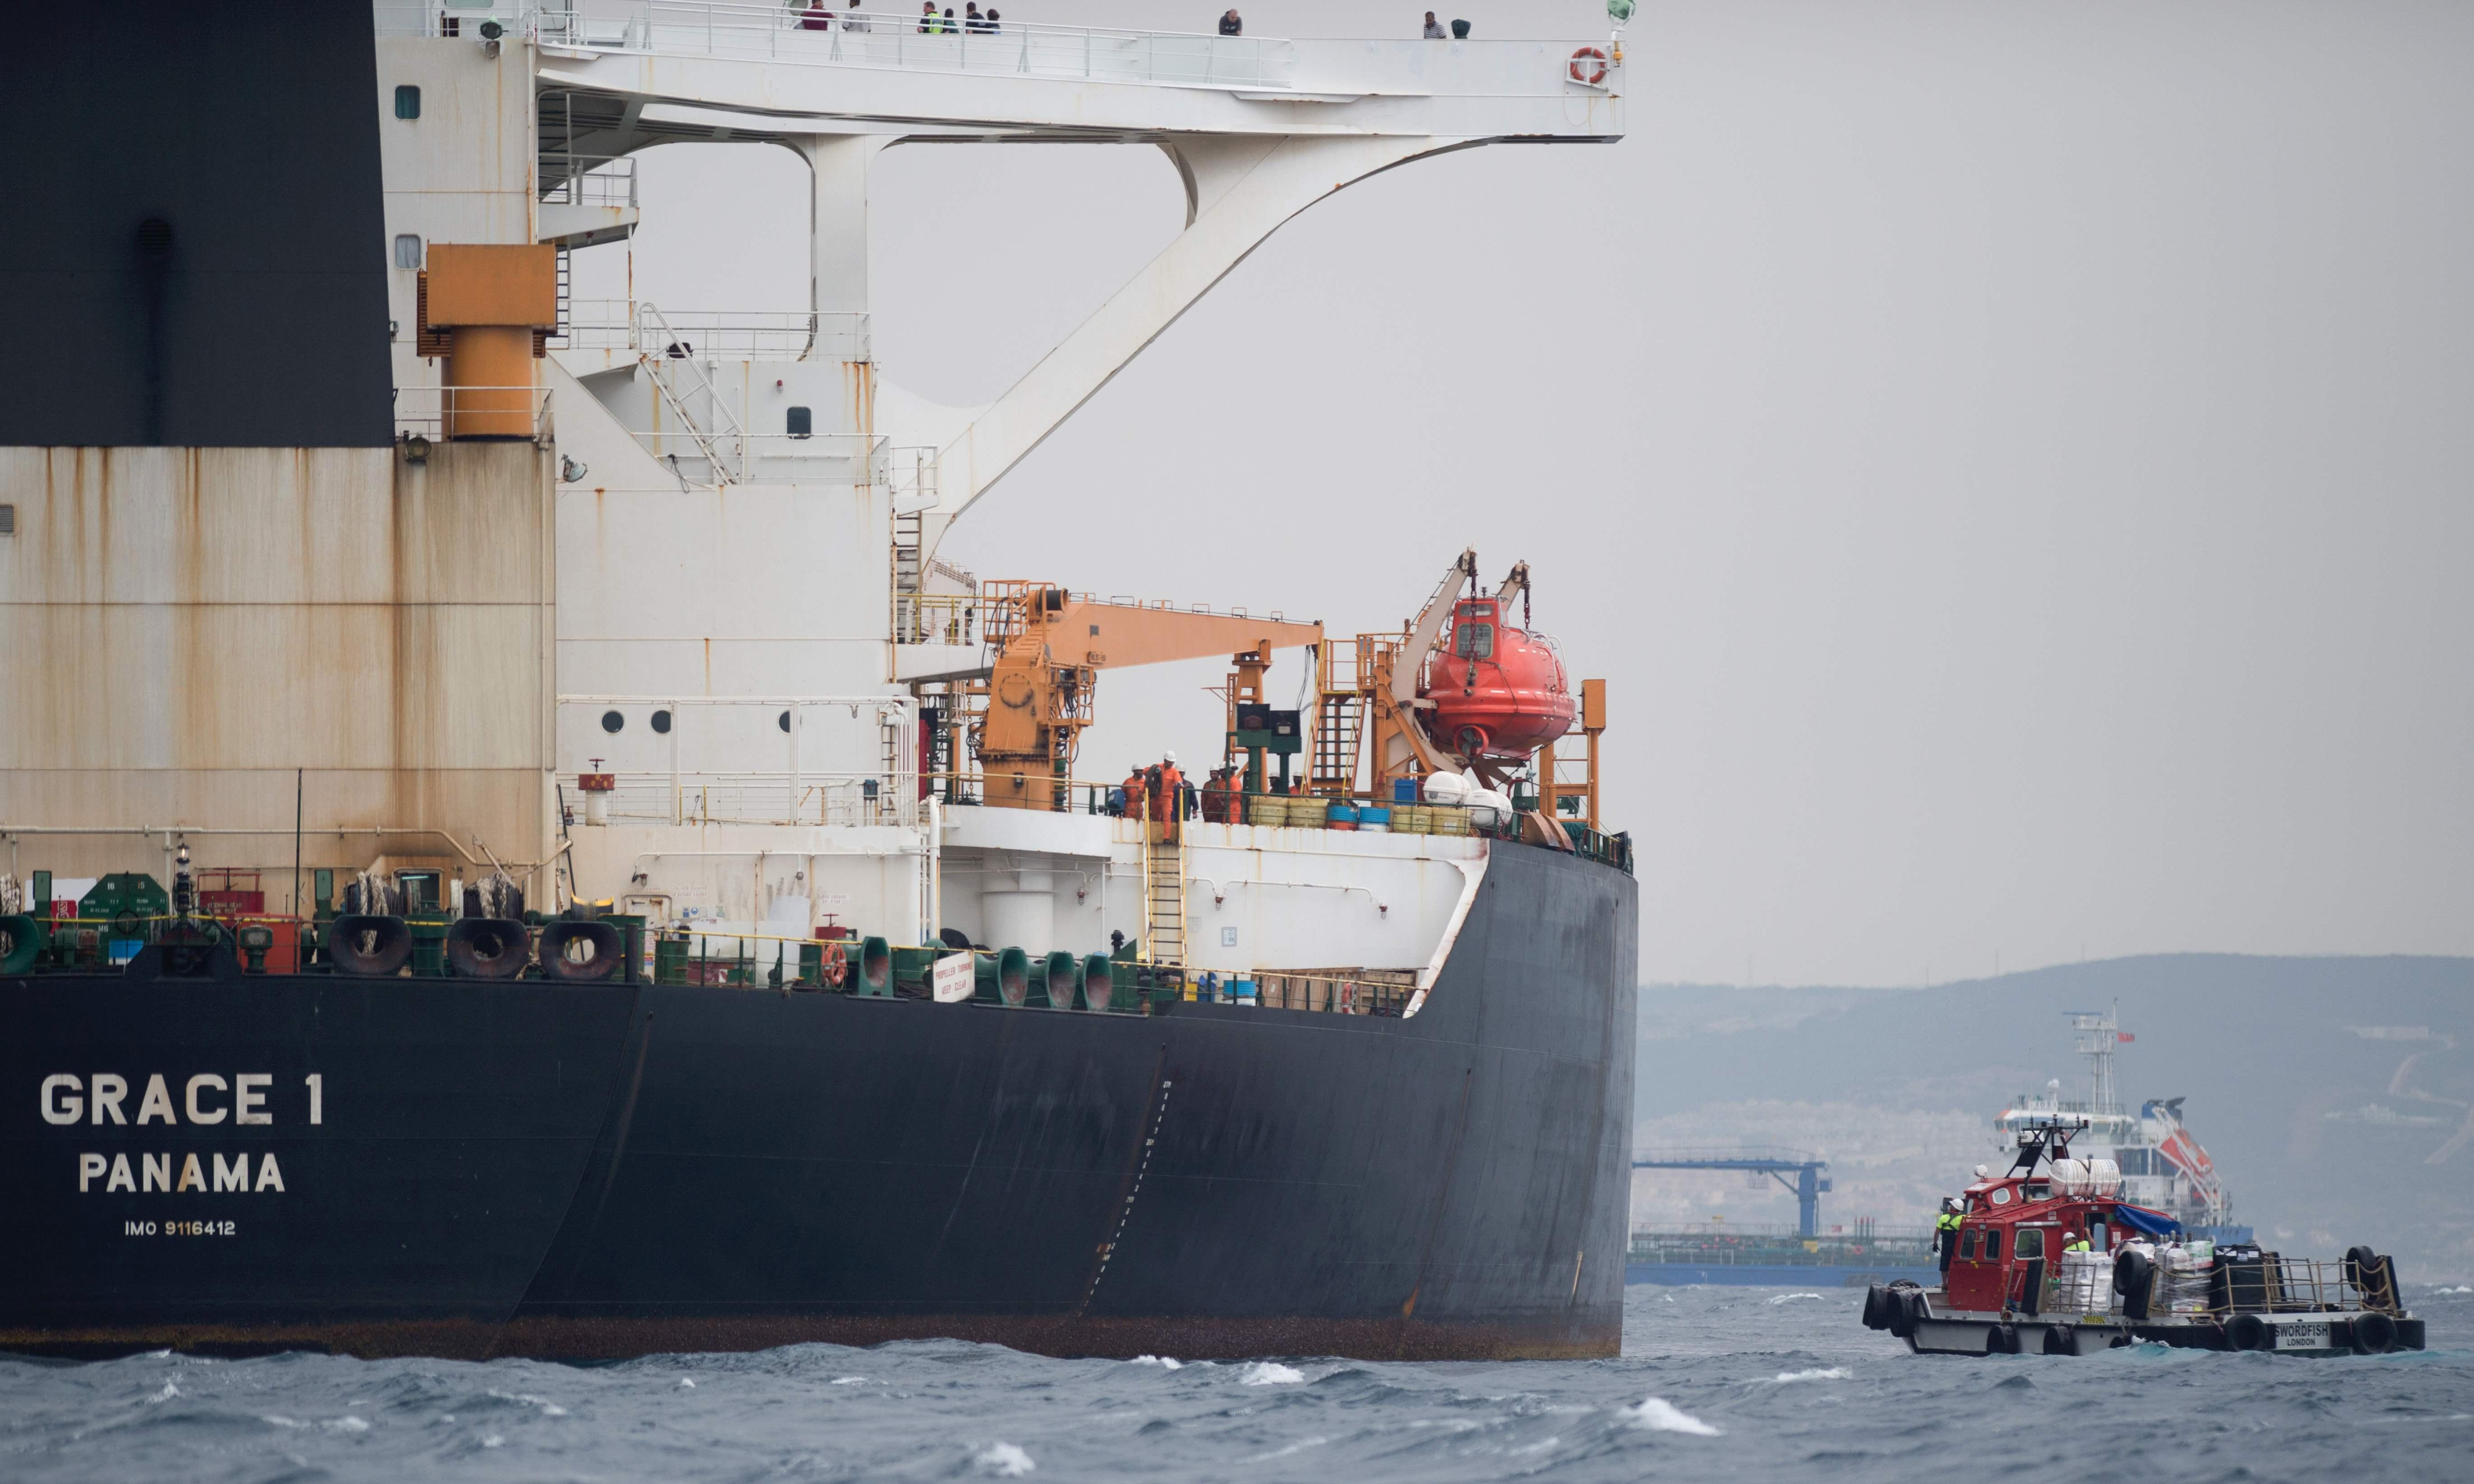 UK may help release Iranian oil tanker if it gets Syria guarantee